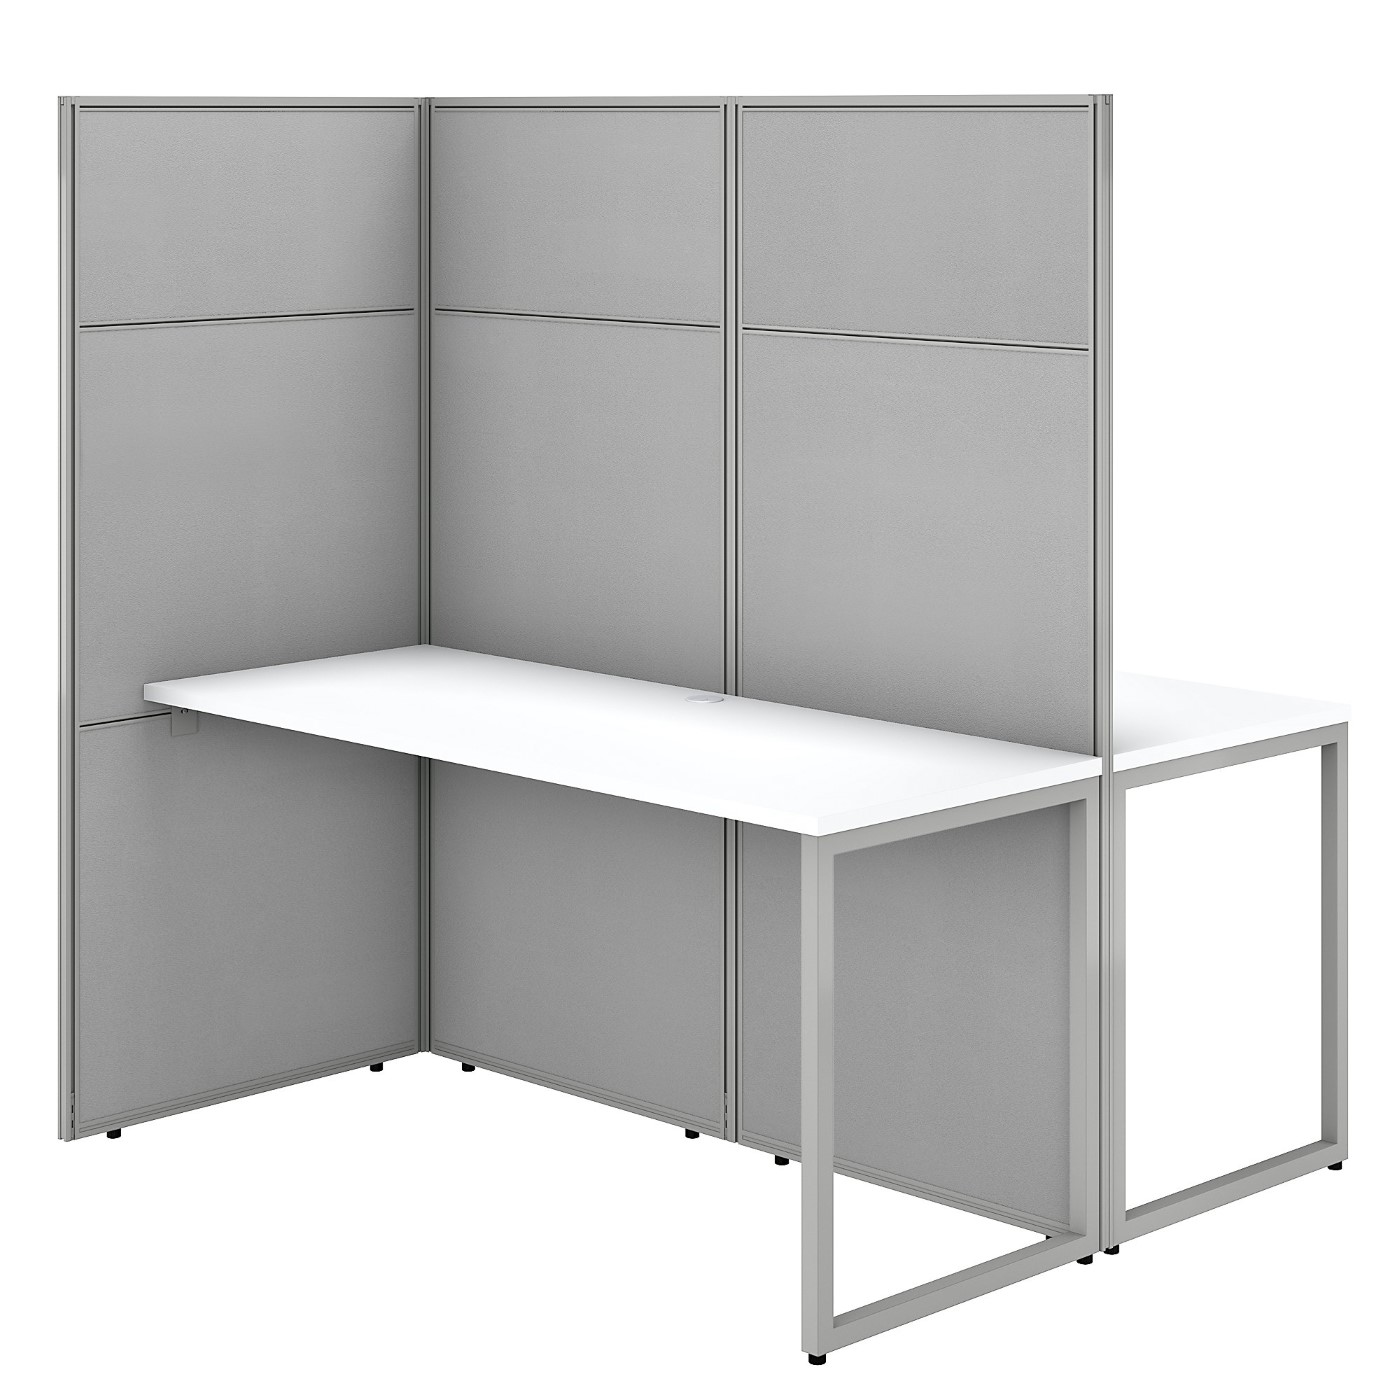 BUSH BUSINESS FURNITURE EASY OFFICE 60W 2 PERSON CUBICLE DESK WORKSTATION WITH 66H PANELS. FREE SHIPPING